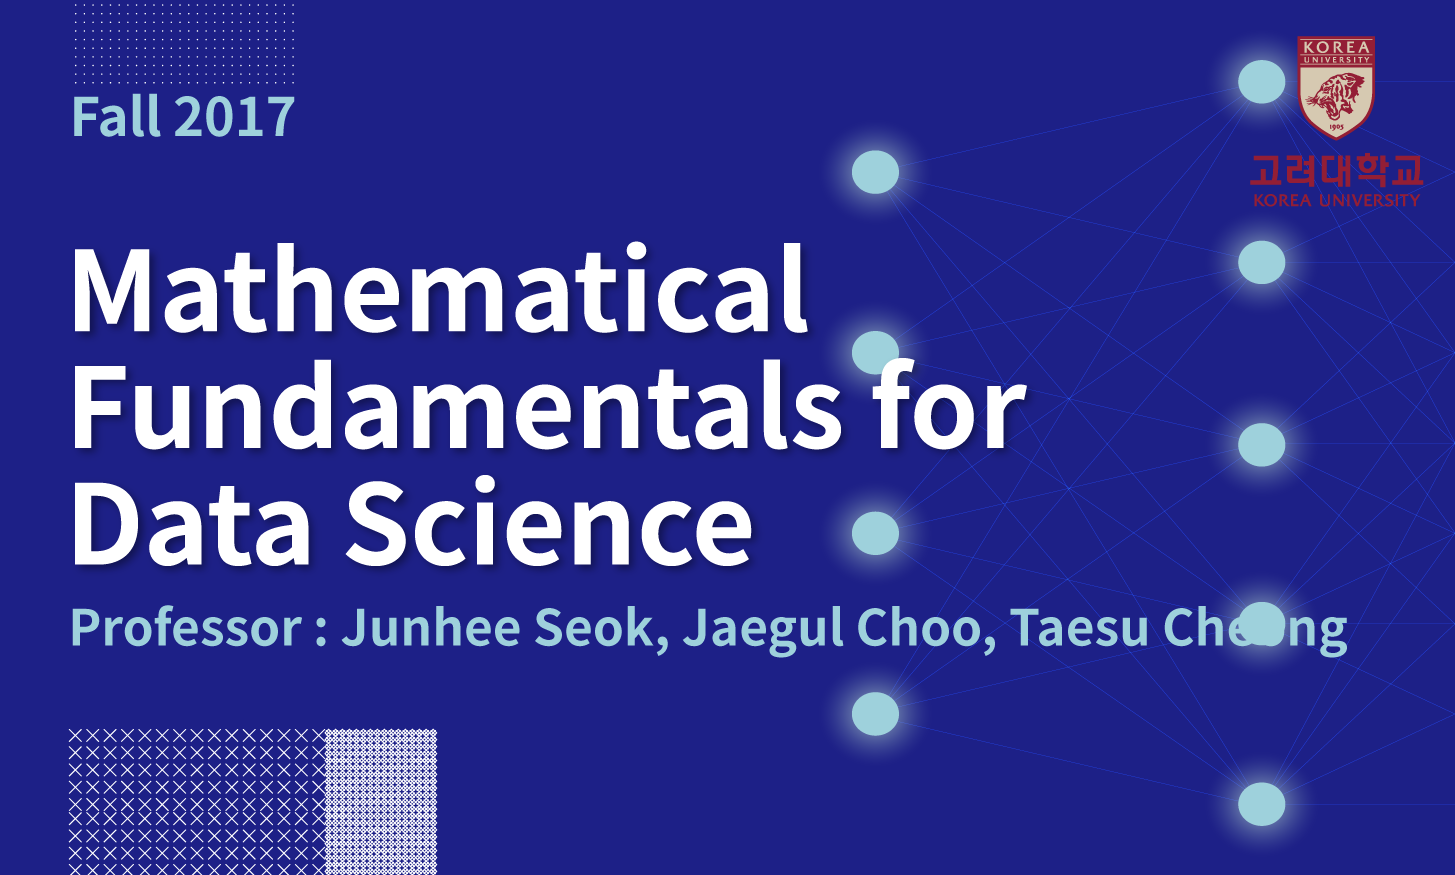 Mathematical Fundamentals for Data Science 개강일 2017-10-17 종강일 2018-01-30 강좌상태 end